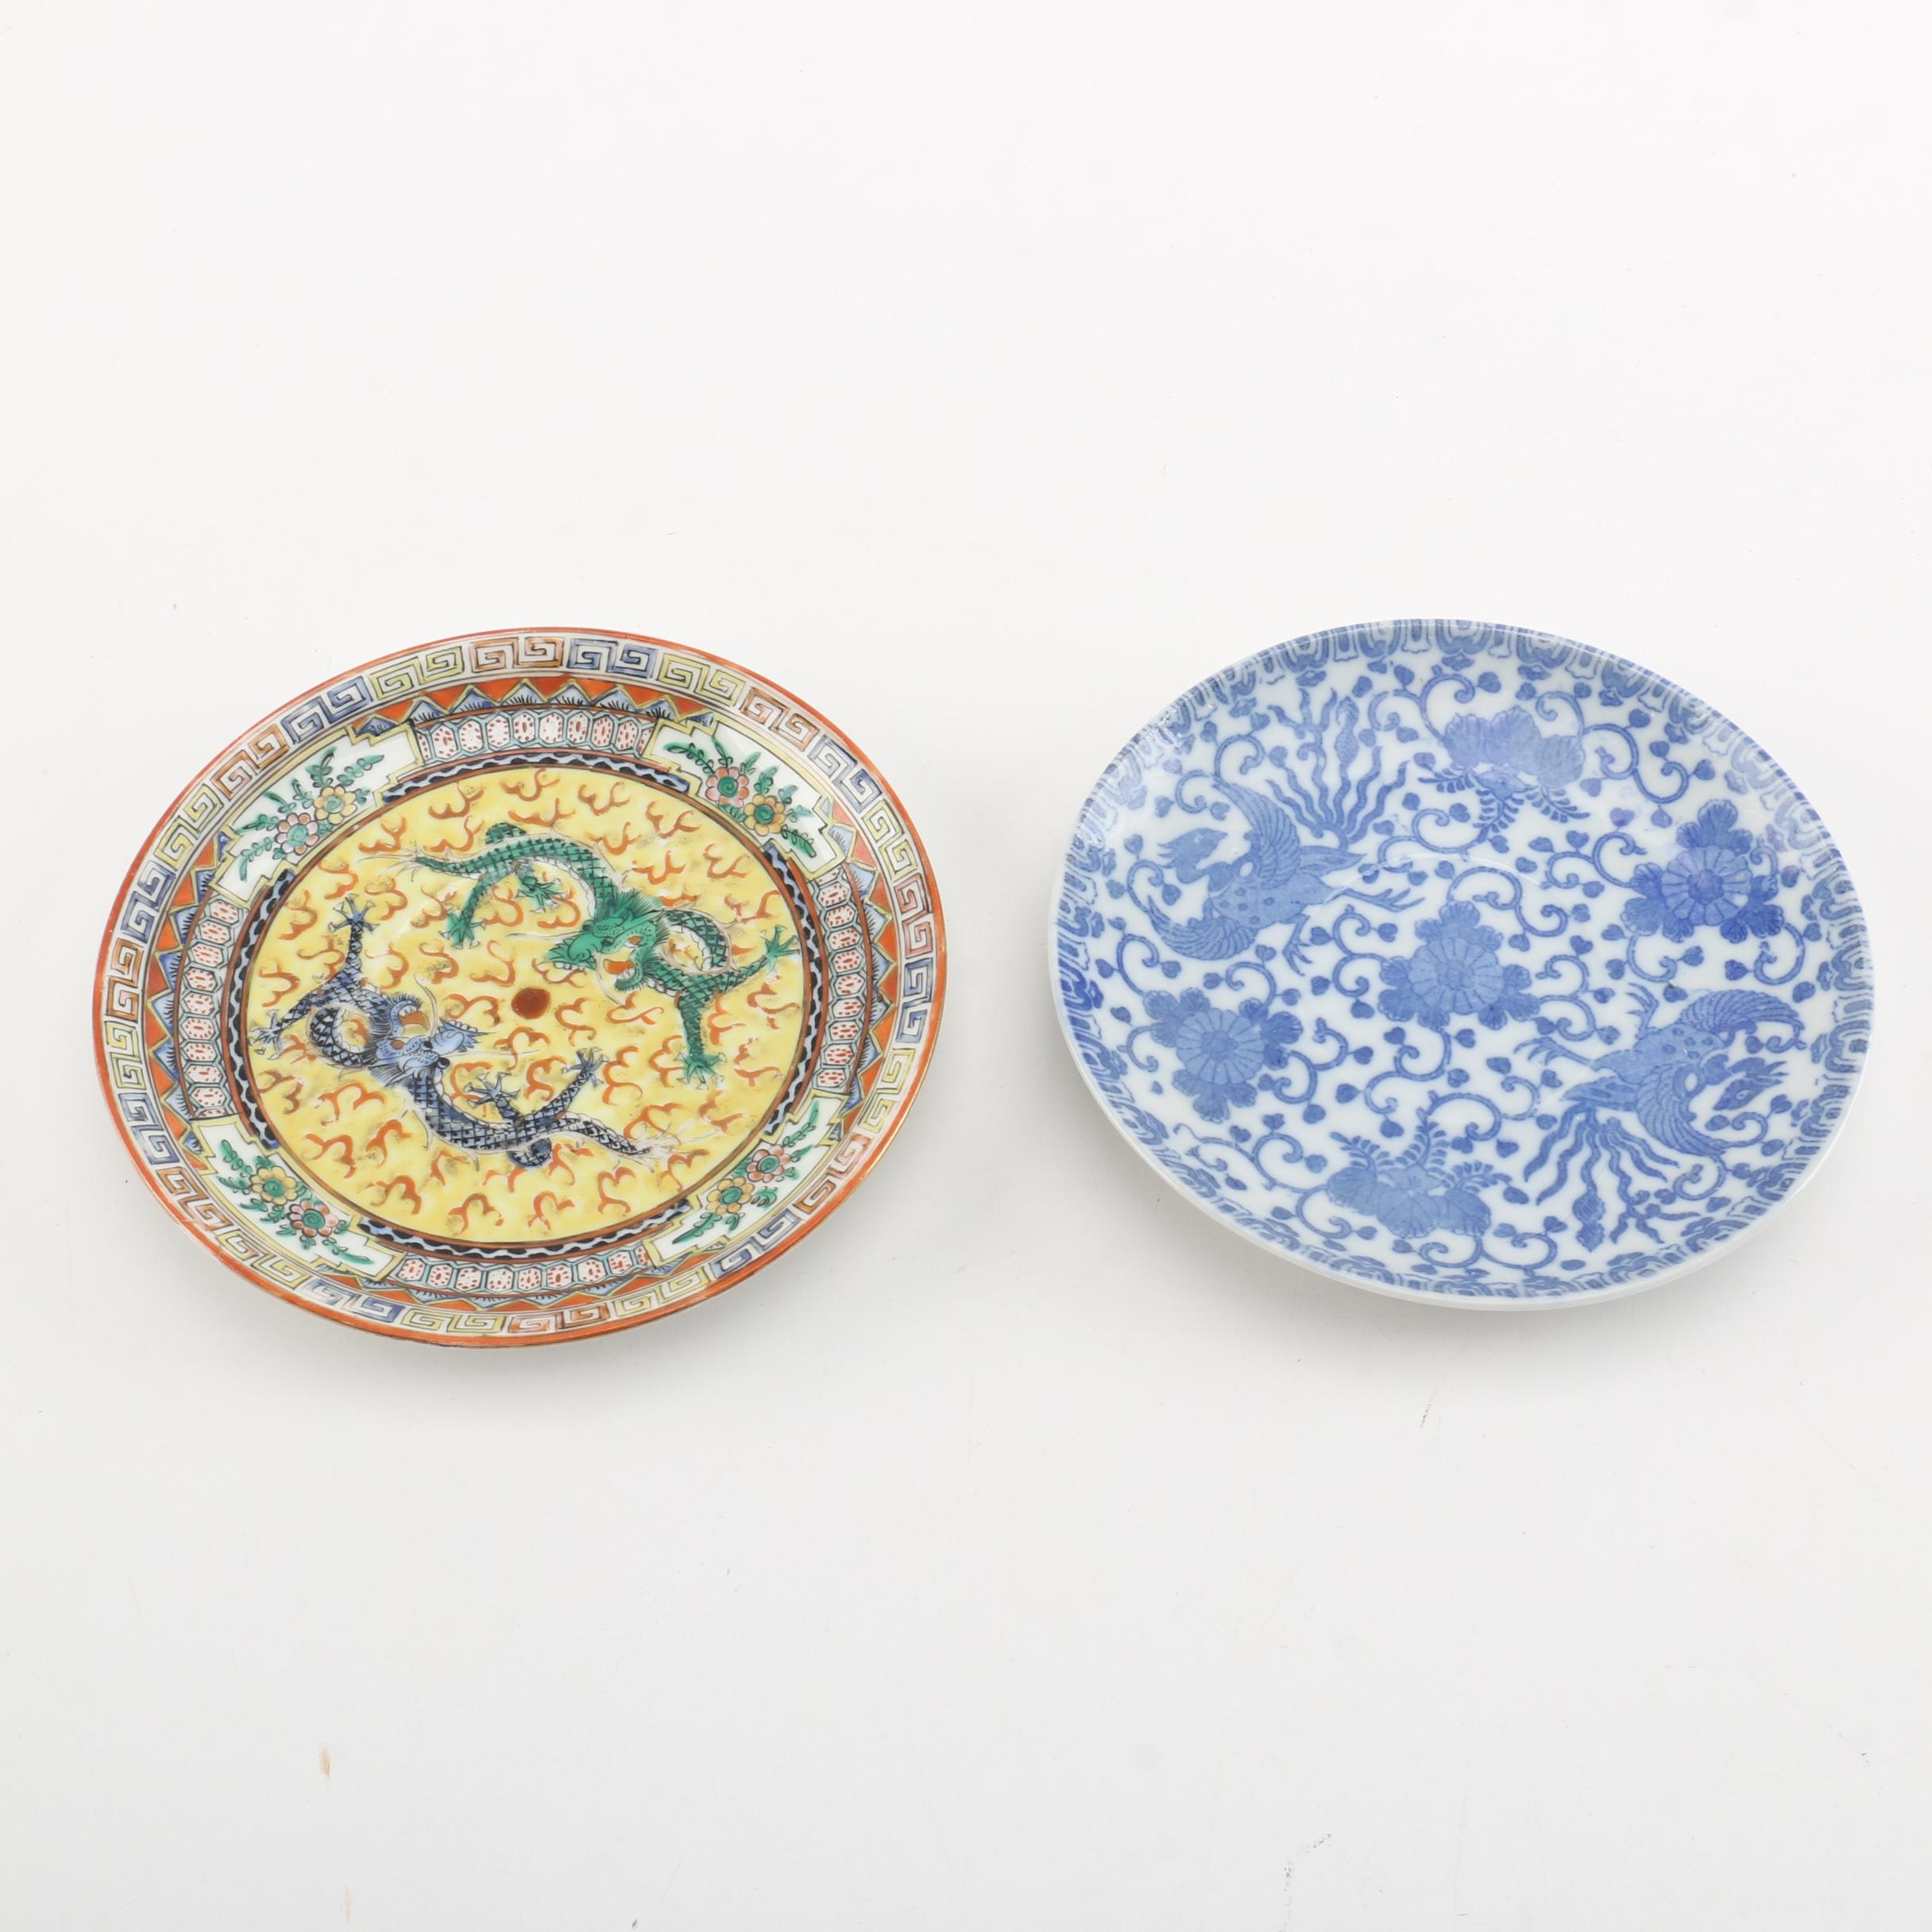 Chinese and Japanese Porcelain Plates